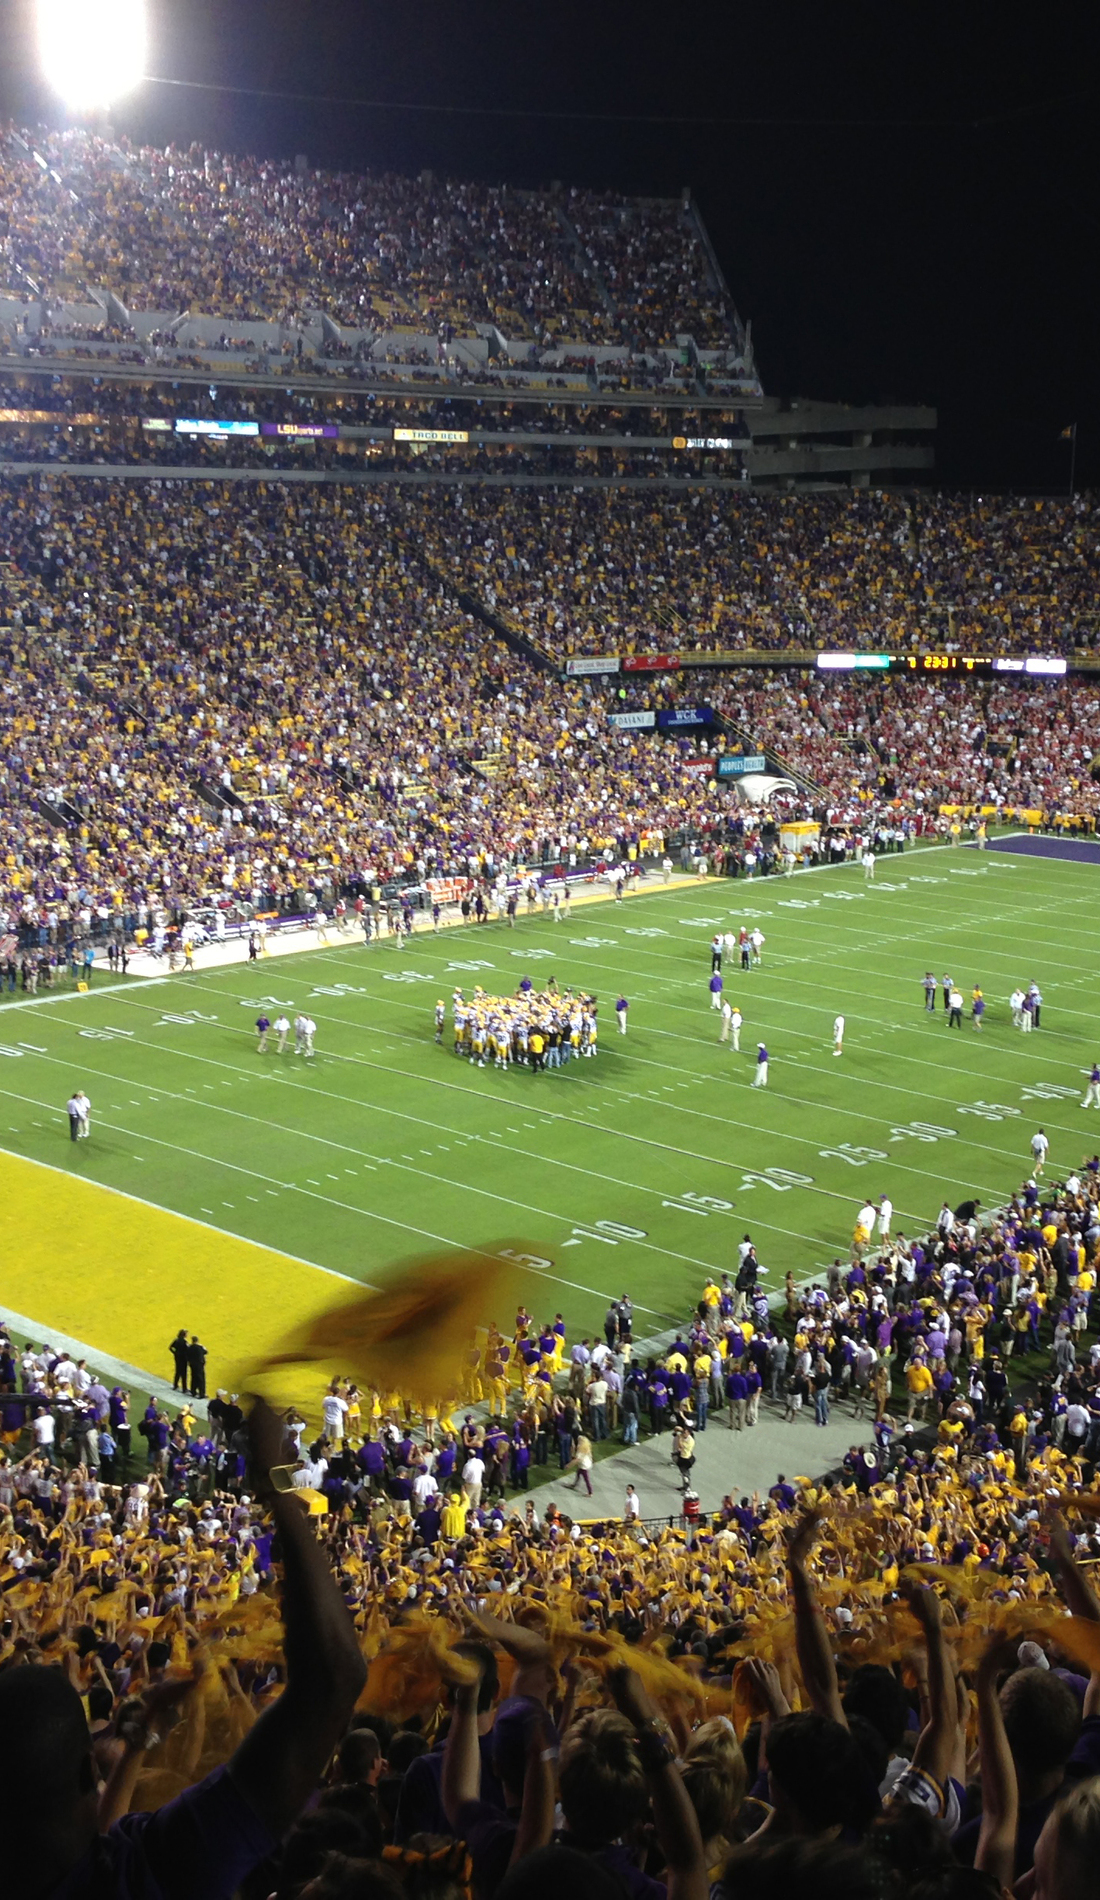 A LSU Tigers Football live event